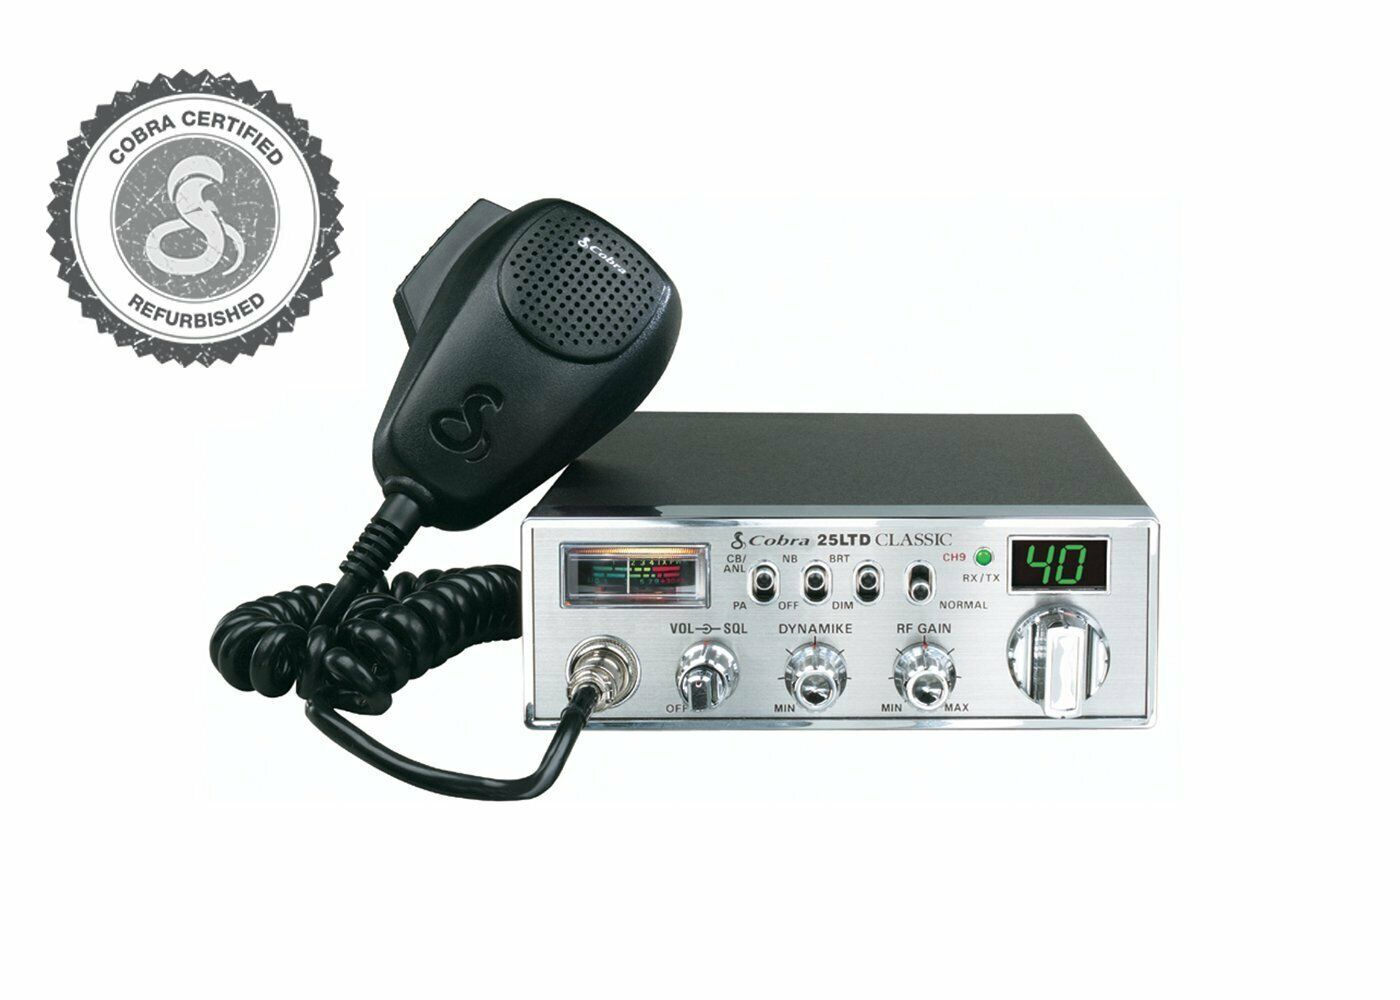 Cobra Electronics 25 LTD Certified Refurbished Professional CB Radio. Available Now for 59.99